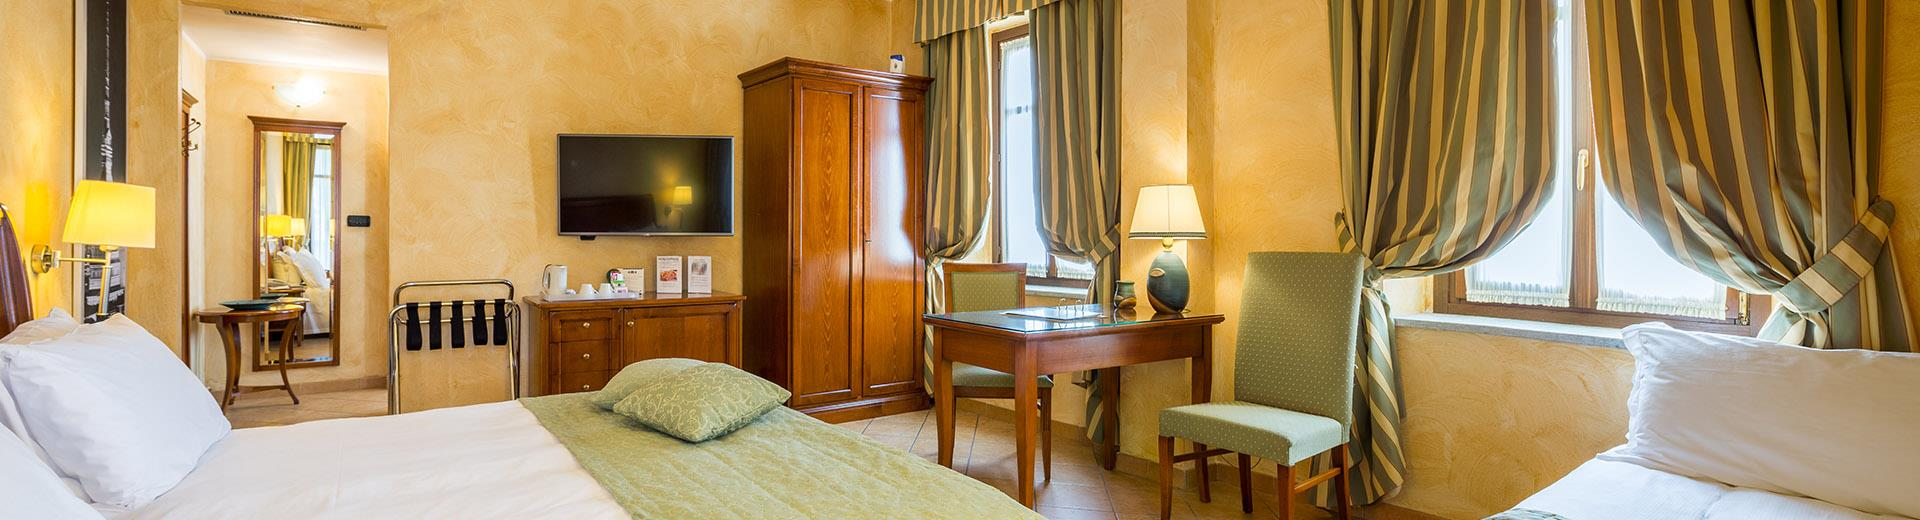 Are you looking for a hotel for your stay near Turin airport? Book your room at the Best Western Hotel Le Rondini